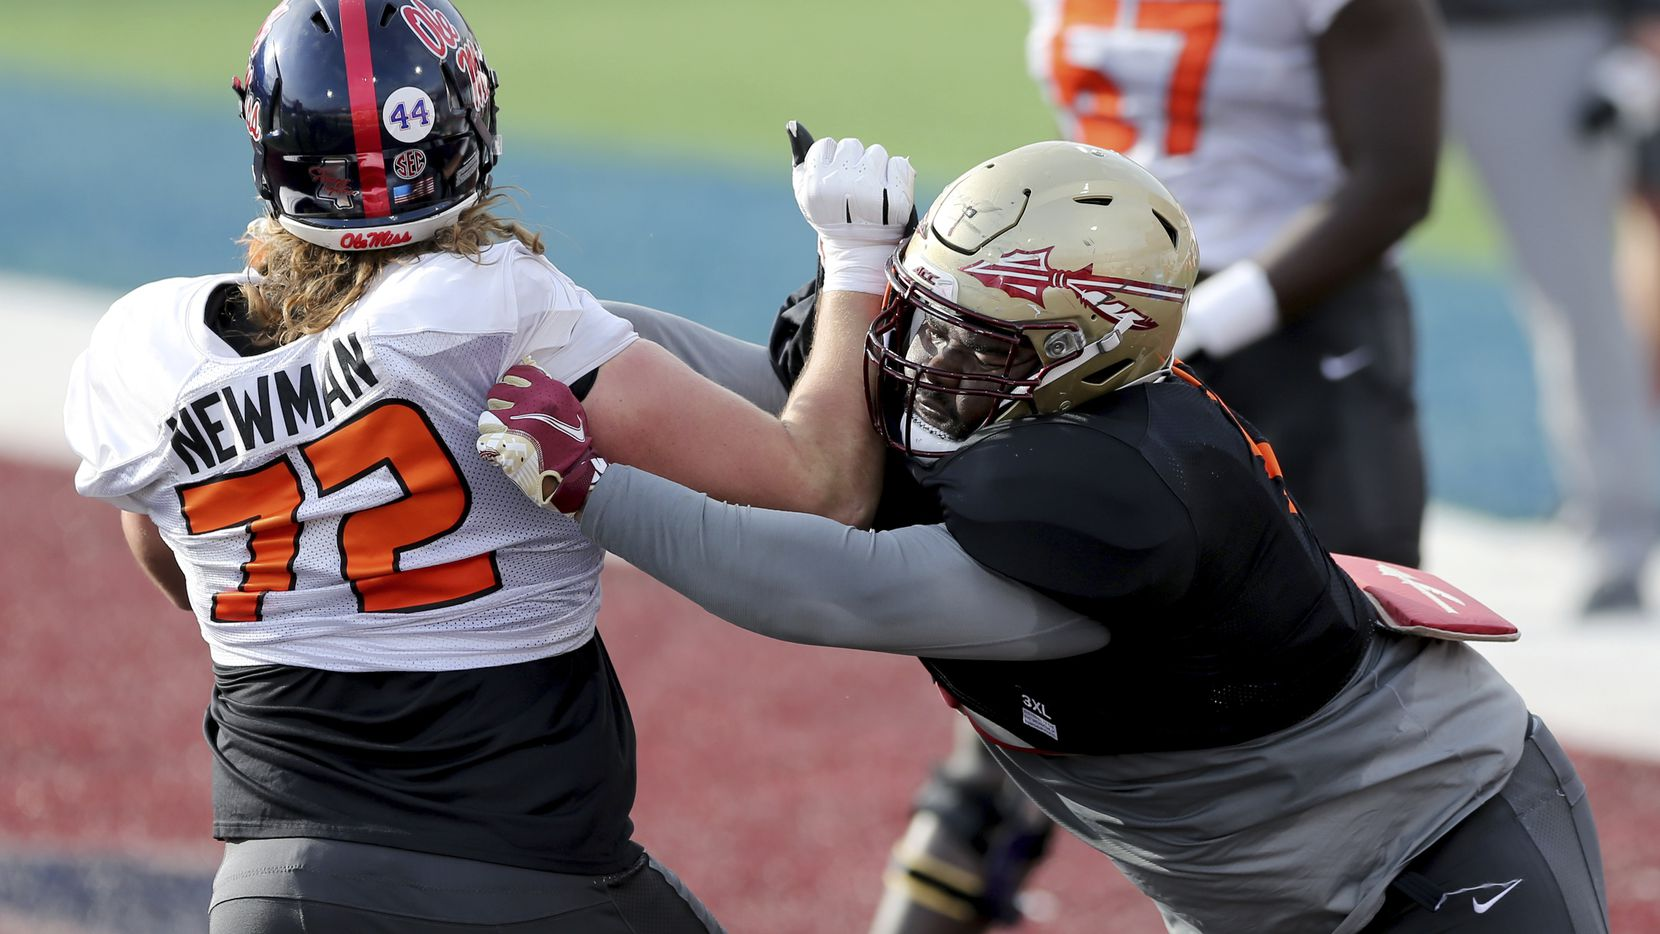 Ole Miss offensive lineman Royce Newman (72) and Florida State defensive lineman Marvin Wilson (21) are pictured during a practice for the Senior Bowl game in Mobile, Ala., on Wednesday, Jan. 27, 2021. (AP Photo/Rusty Costanza)